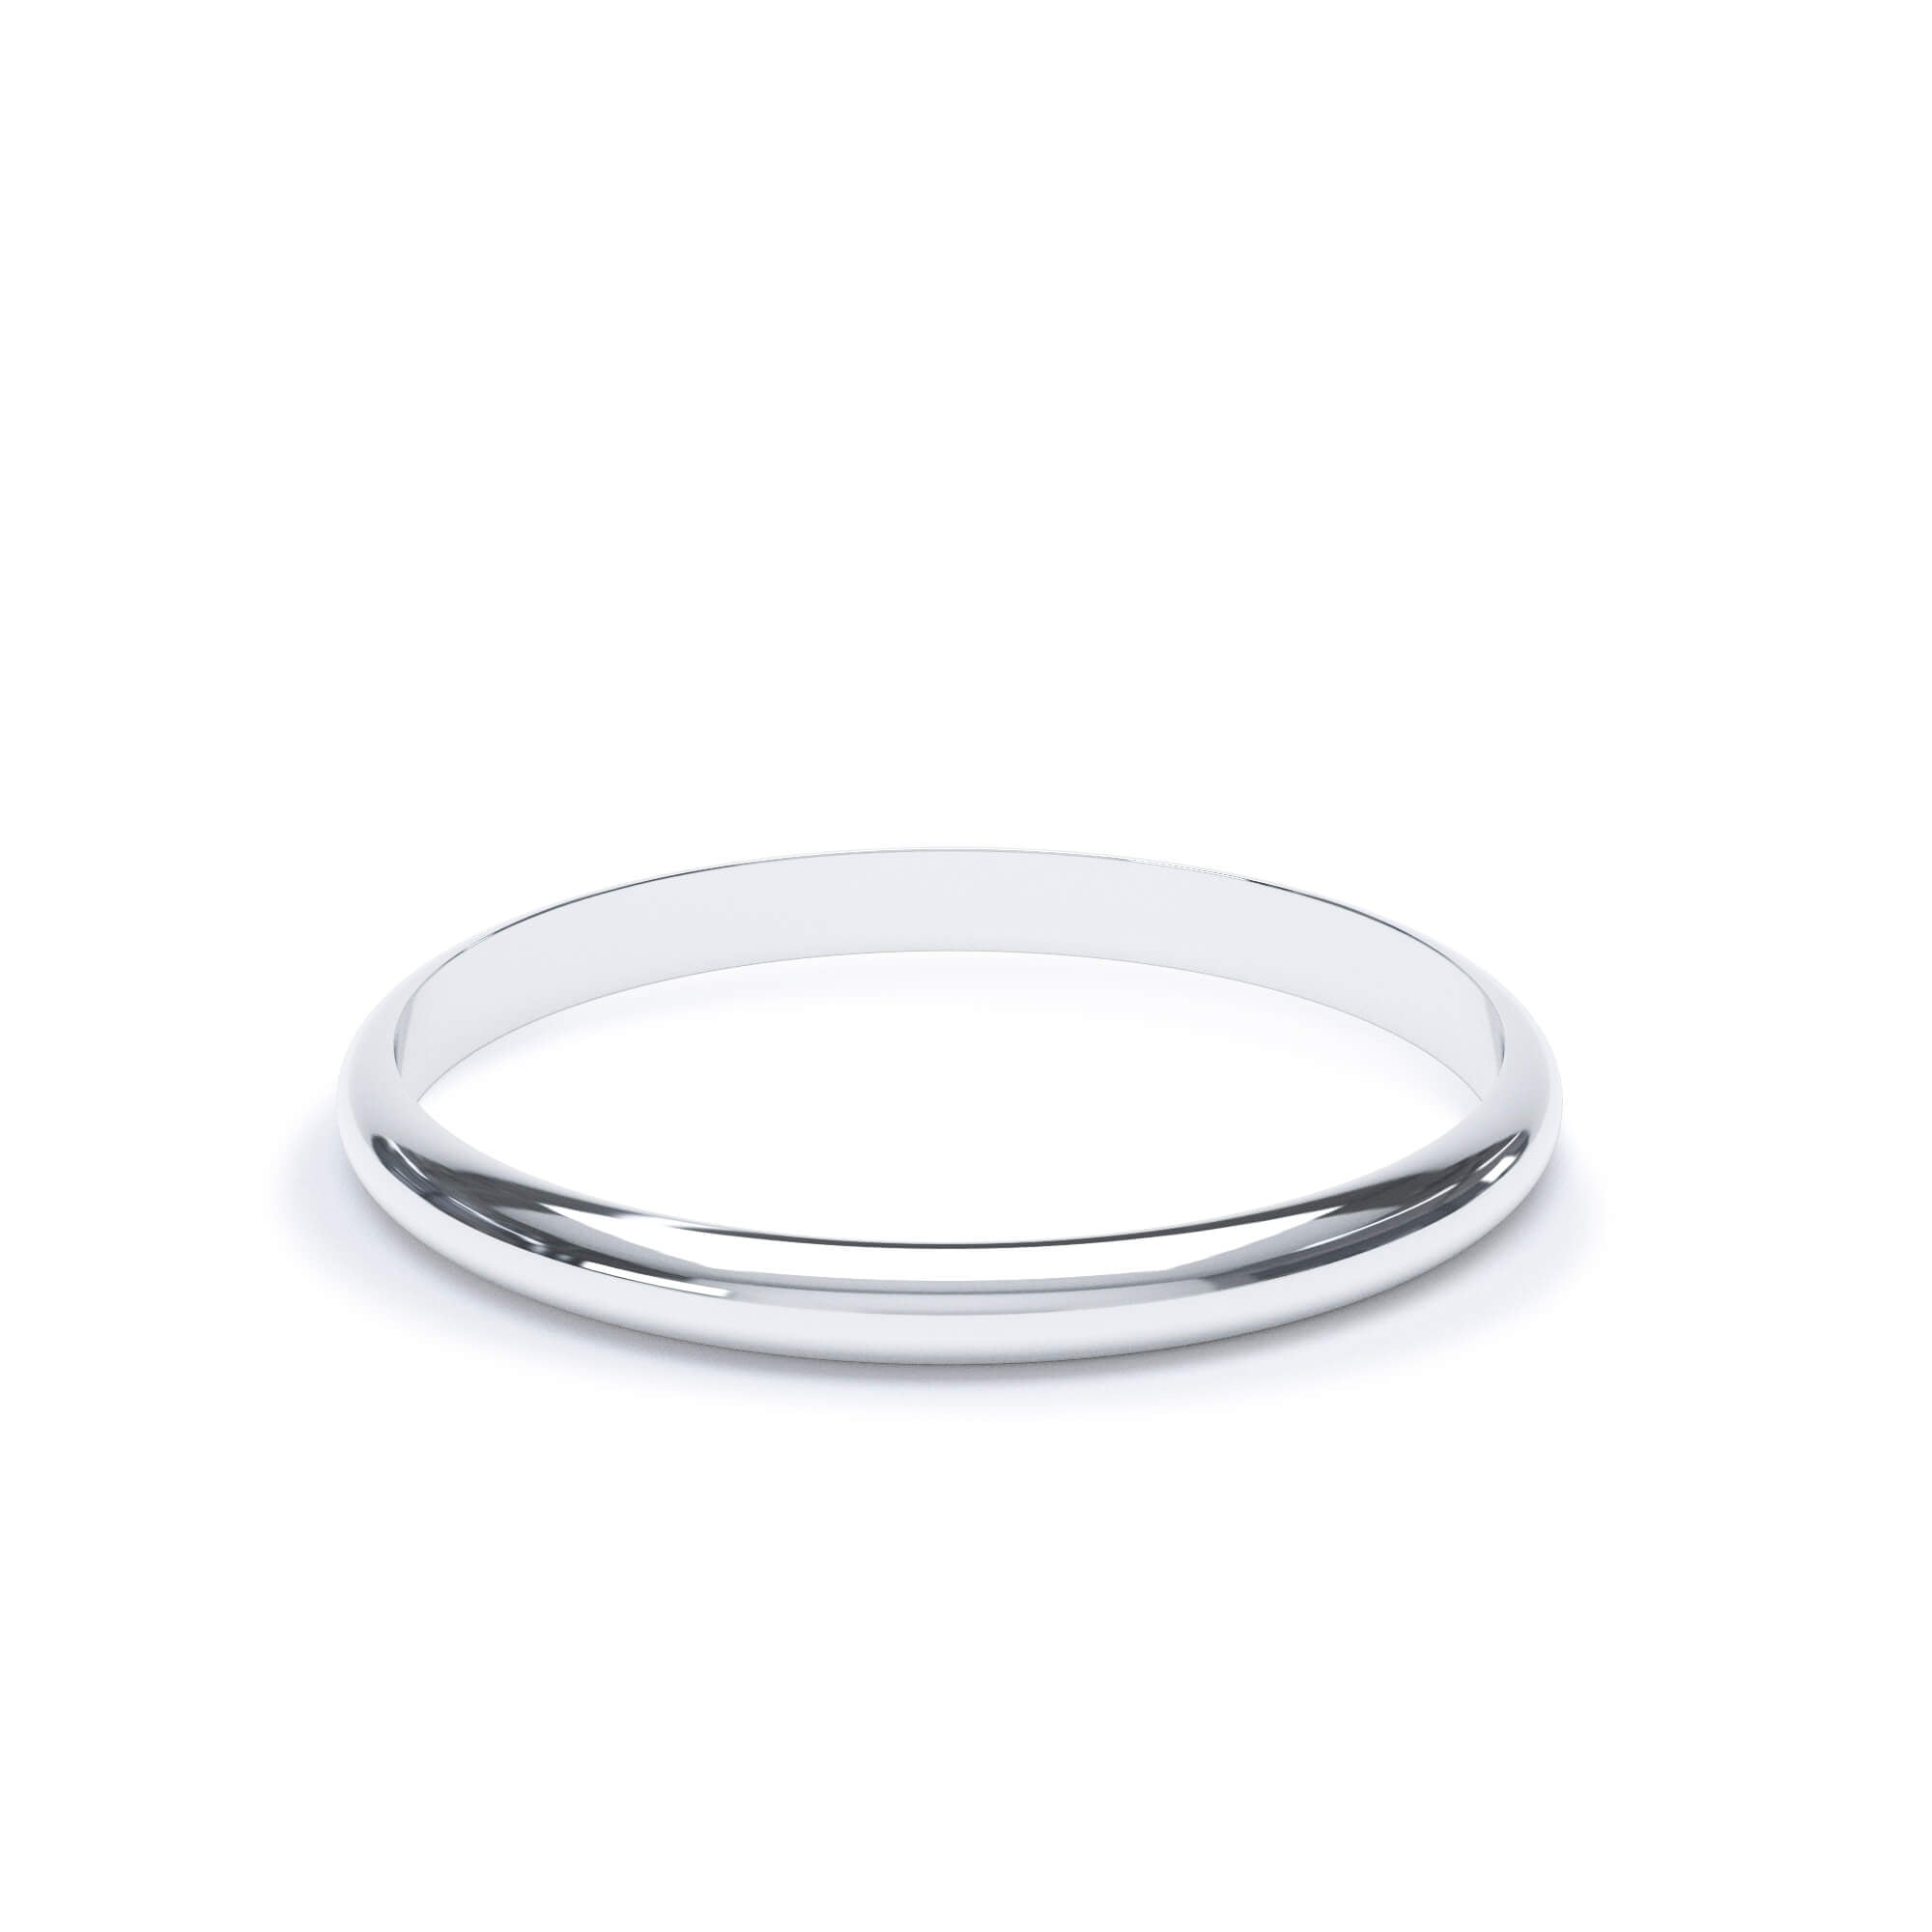 Lily Arkwright Wedding Bands 2.0mm / Platinum Women's Plain Wedding Band D Shape Profile Platinum